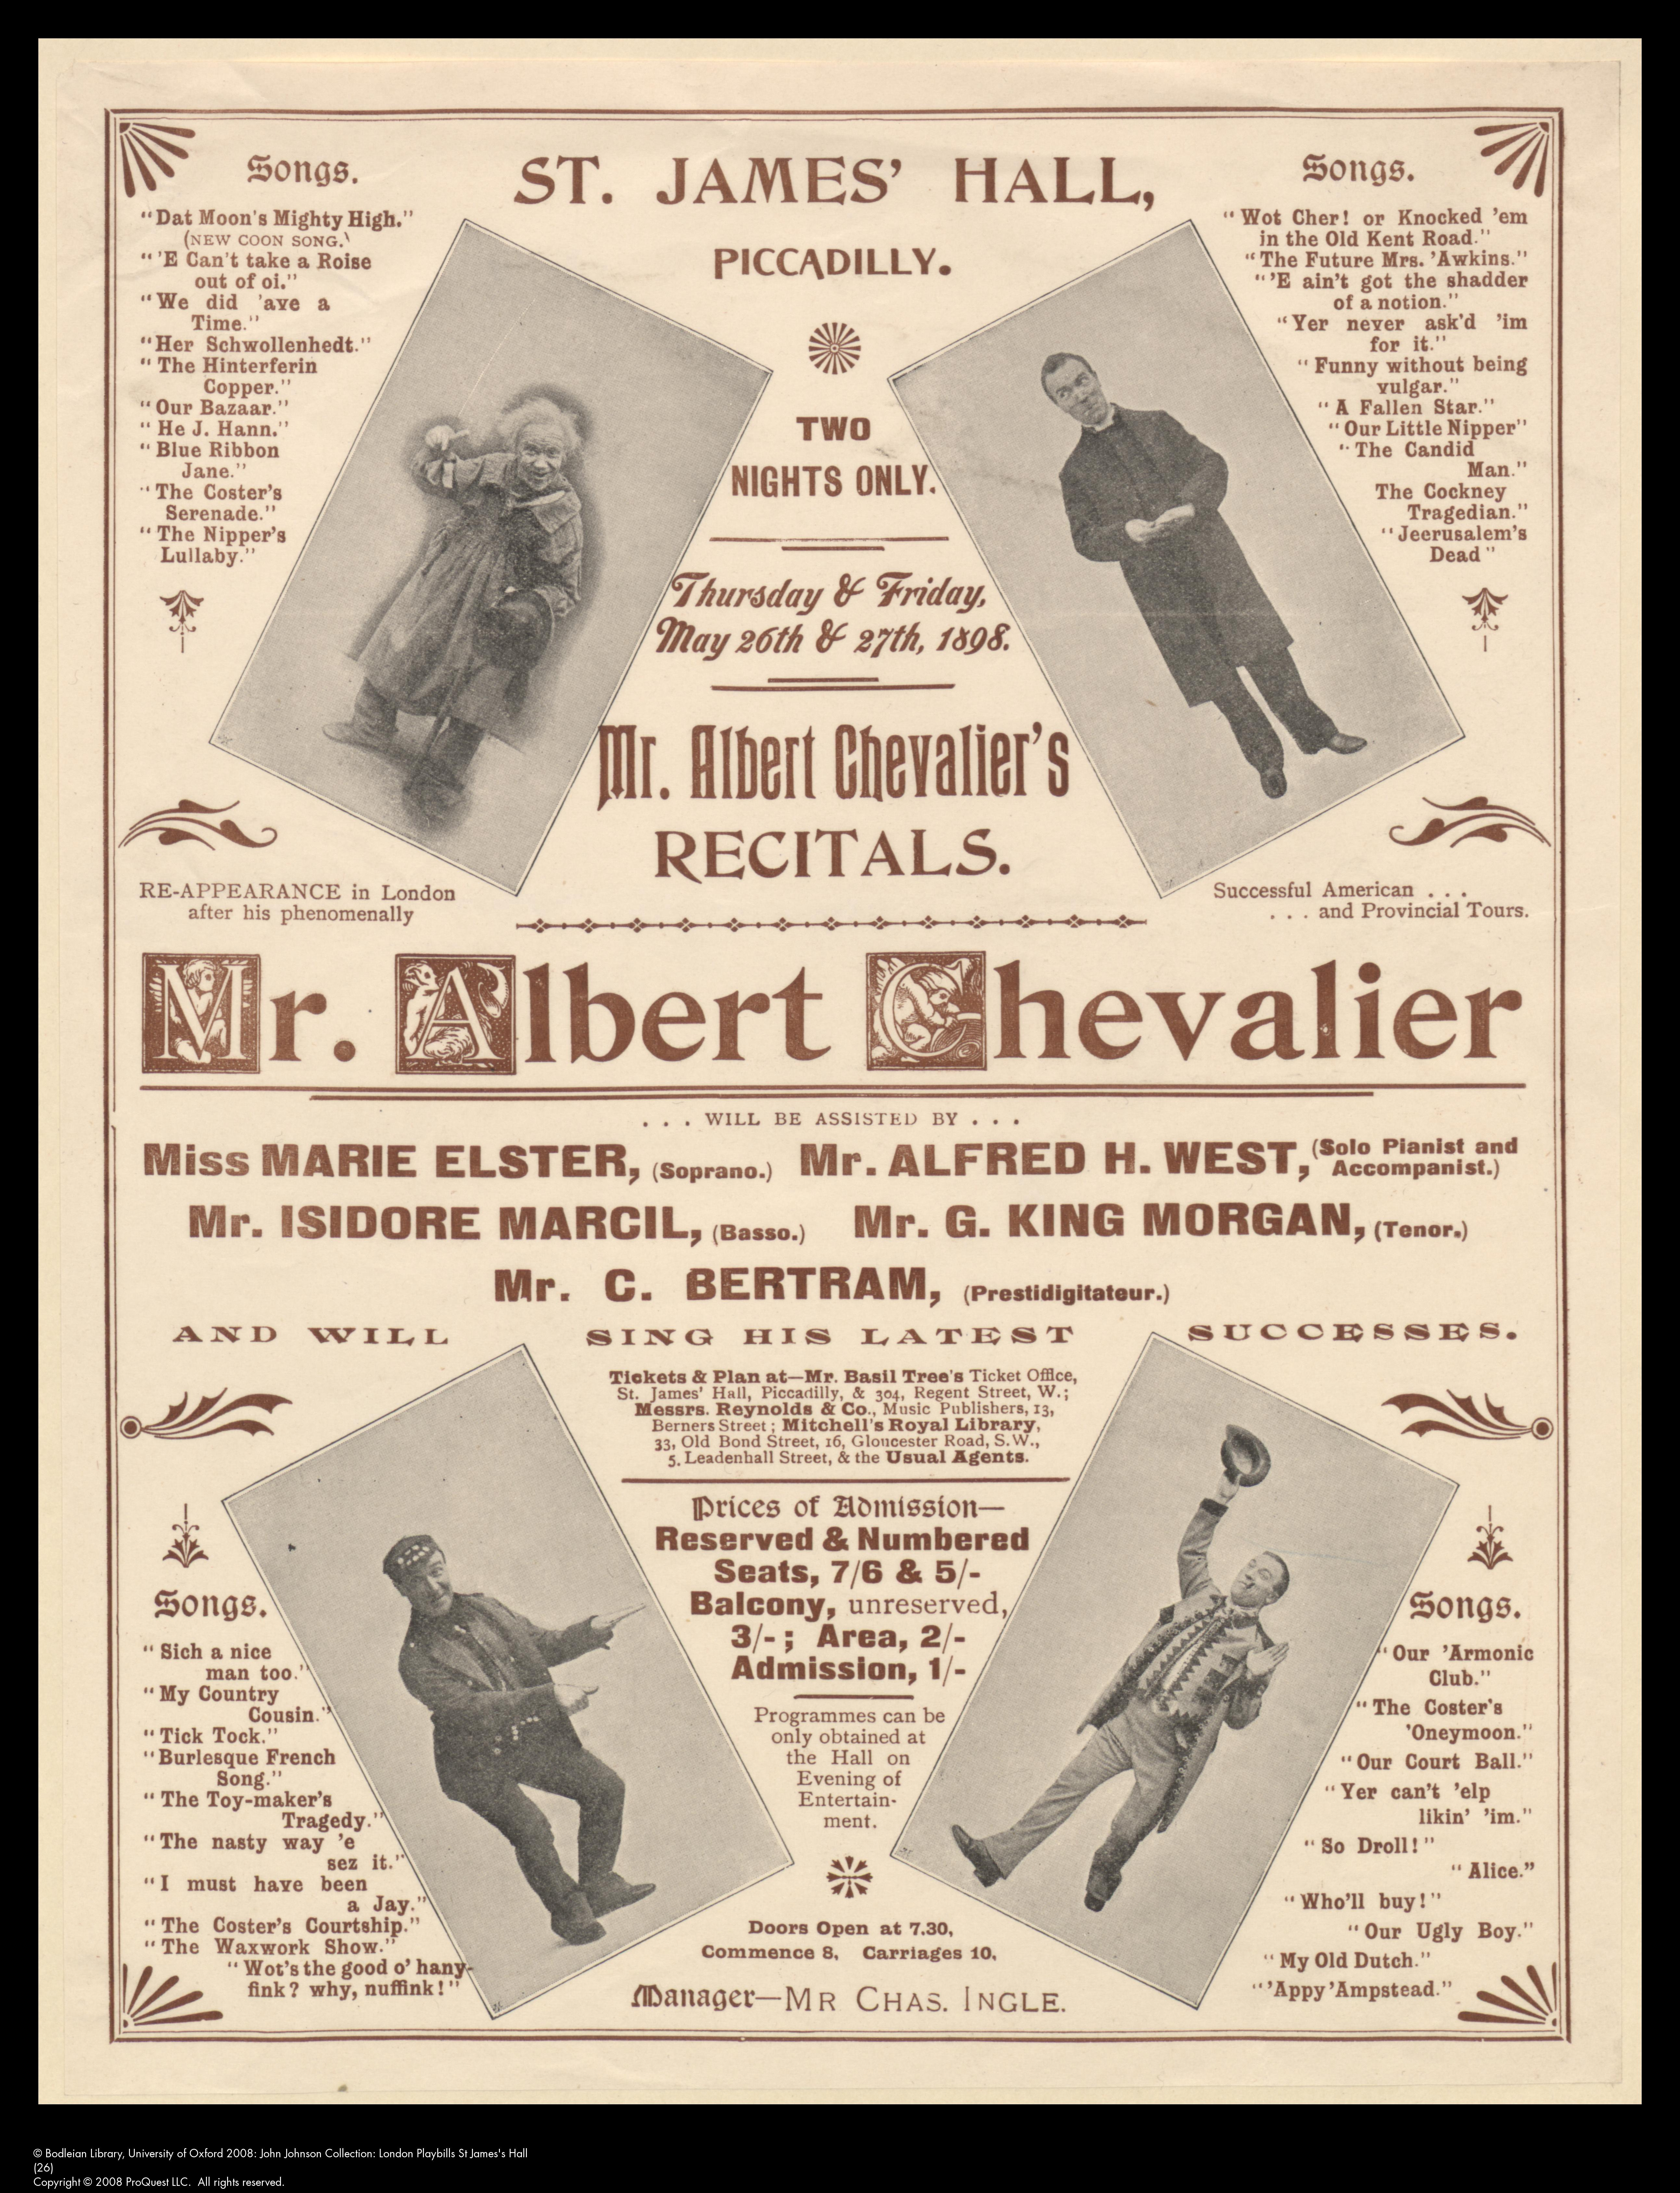 Programme for Albert Chevalier's performances at St. James's Hall, Piccadilly, 26 & 27 May 1895.